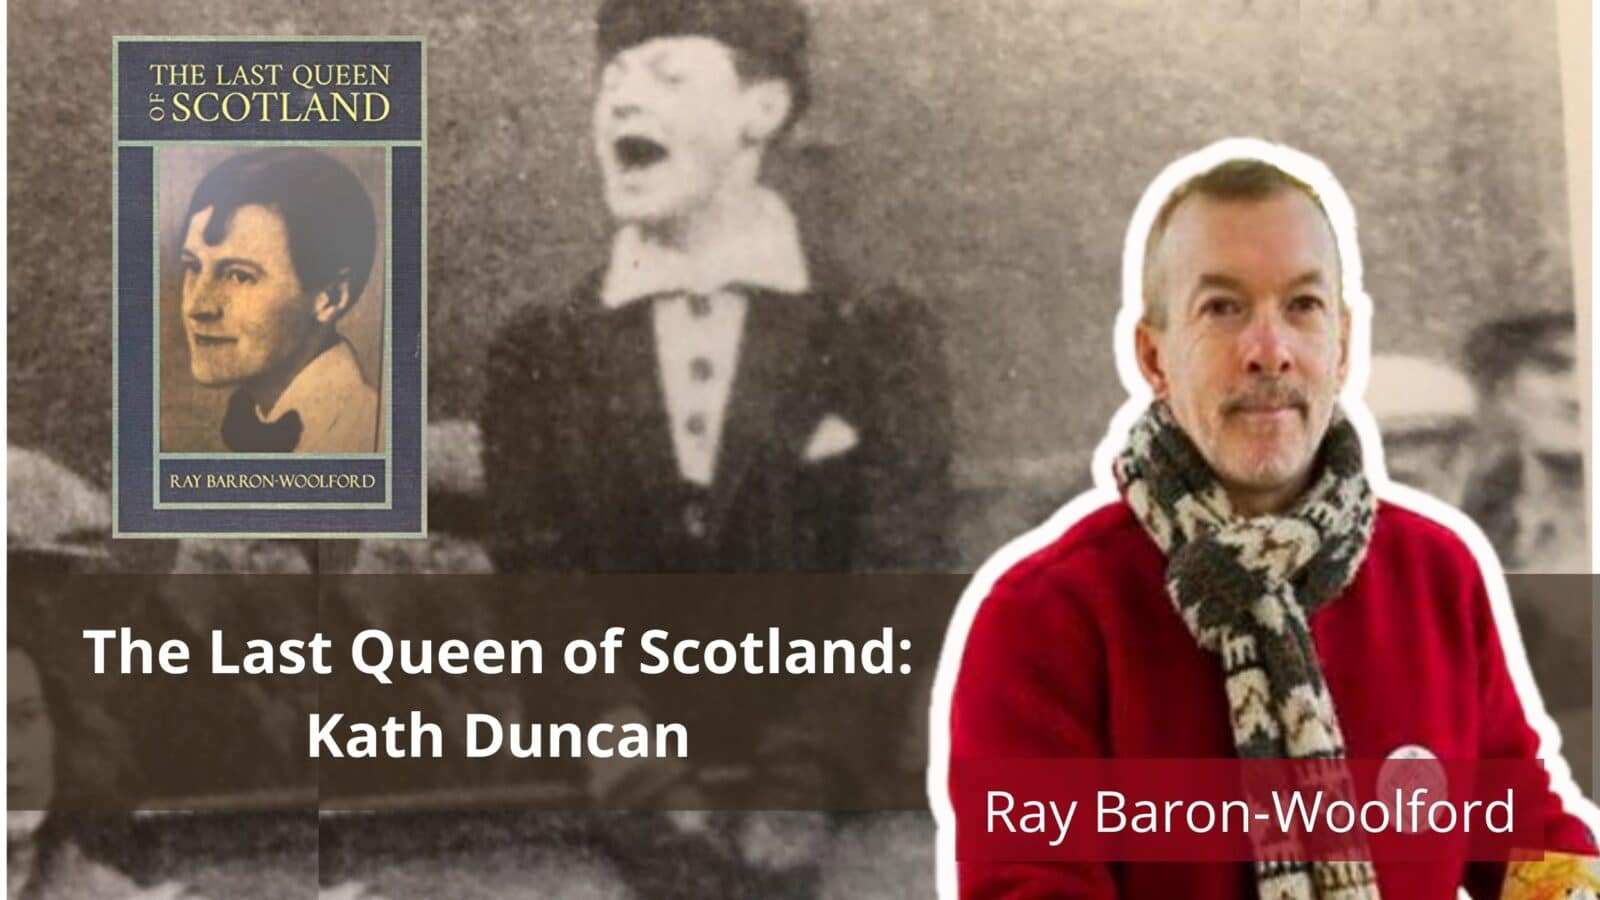 Ray Baron-Wolford Kath Duncan The Last Queen of ScotlandLGBTQ entrepreneurs business owners gay lesbian queer online community OutBuro